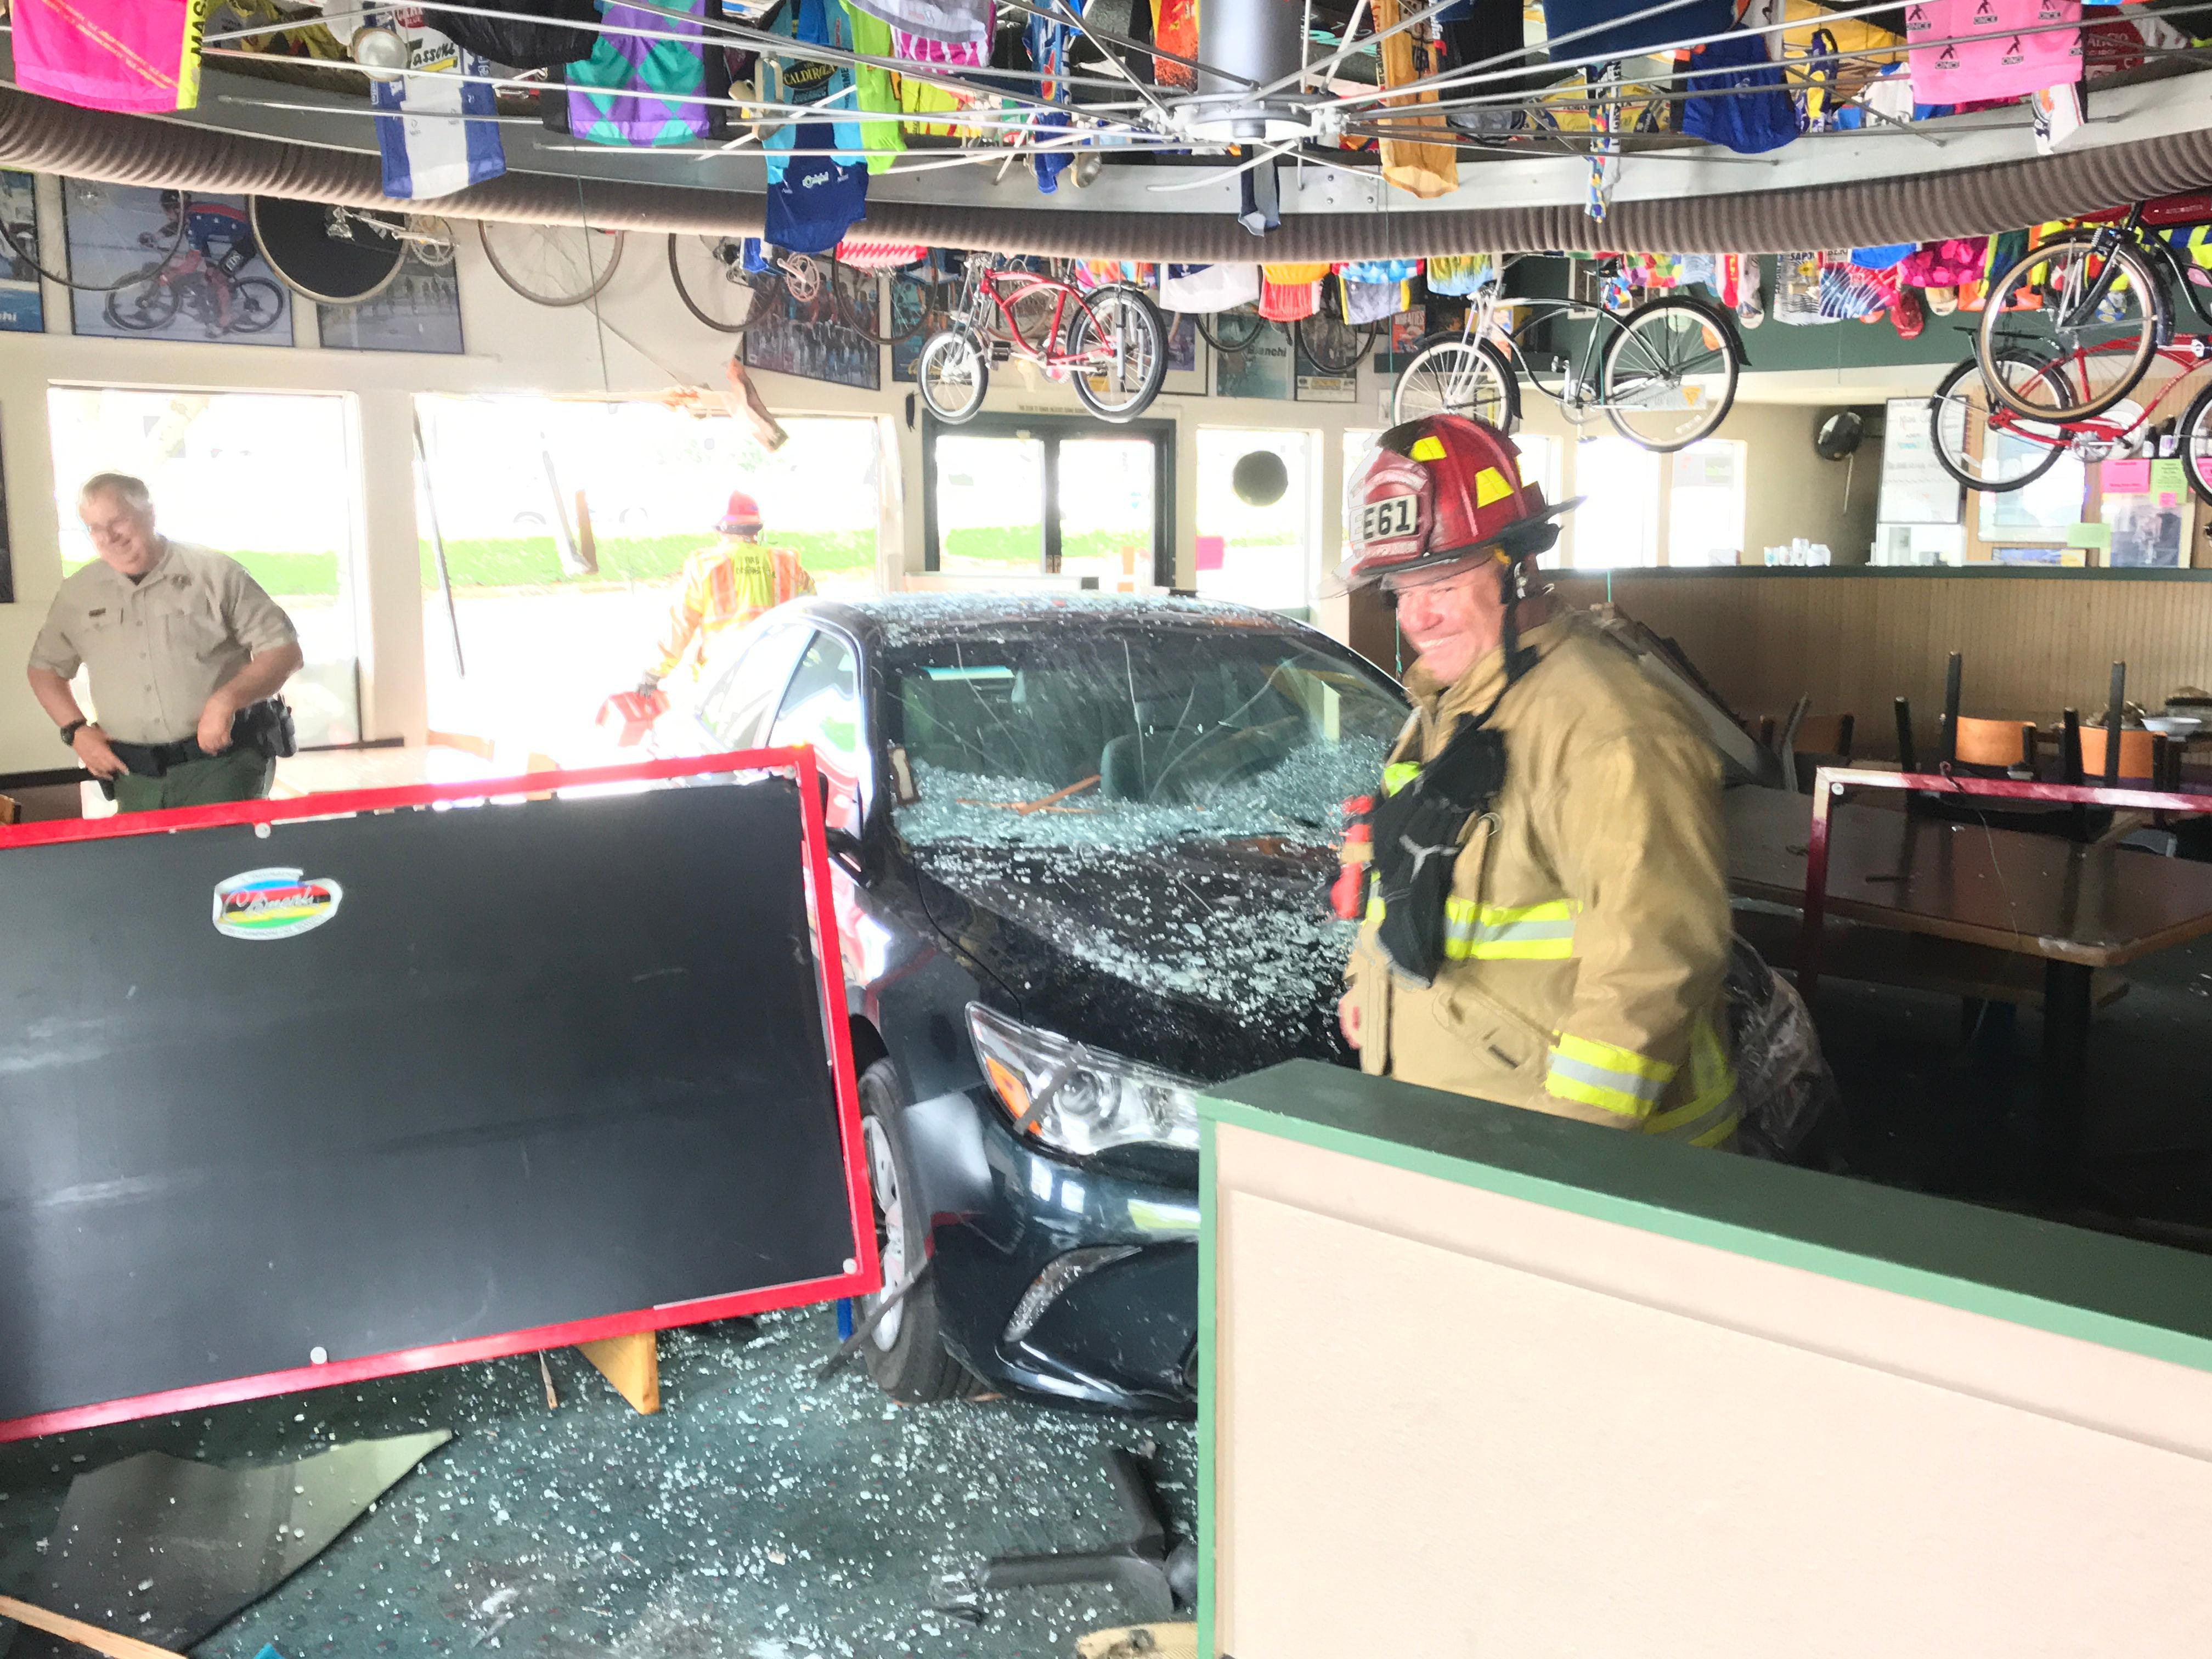 Driver crashes into Hazel Dell pizza shop - Clark County Fire District image - 1.jpg